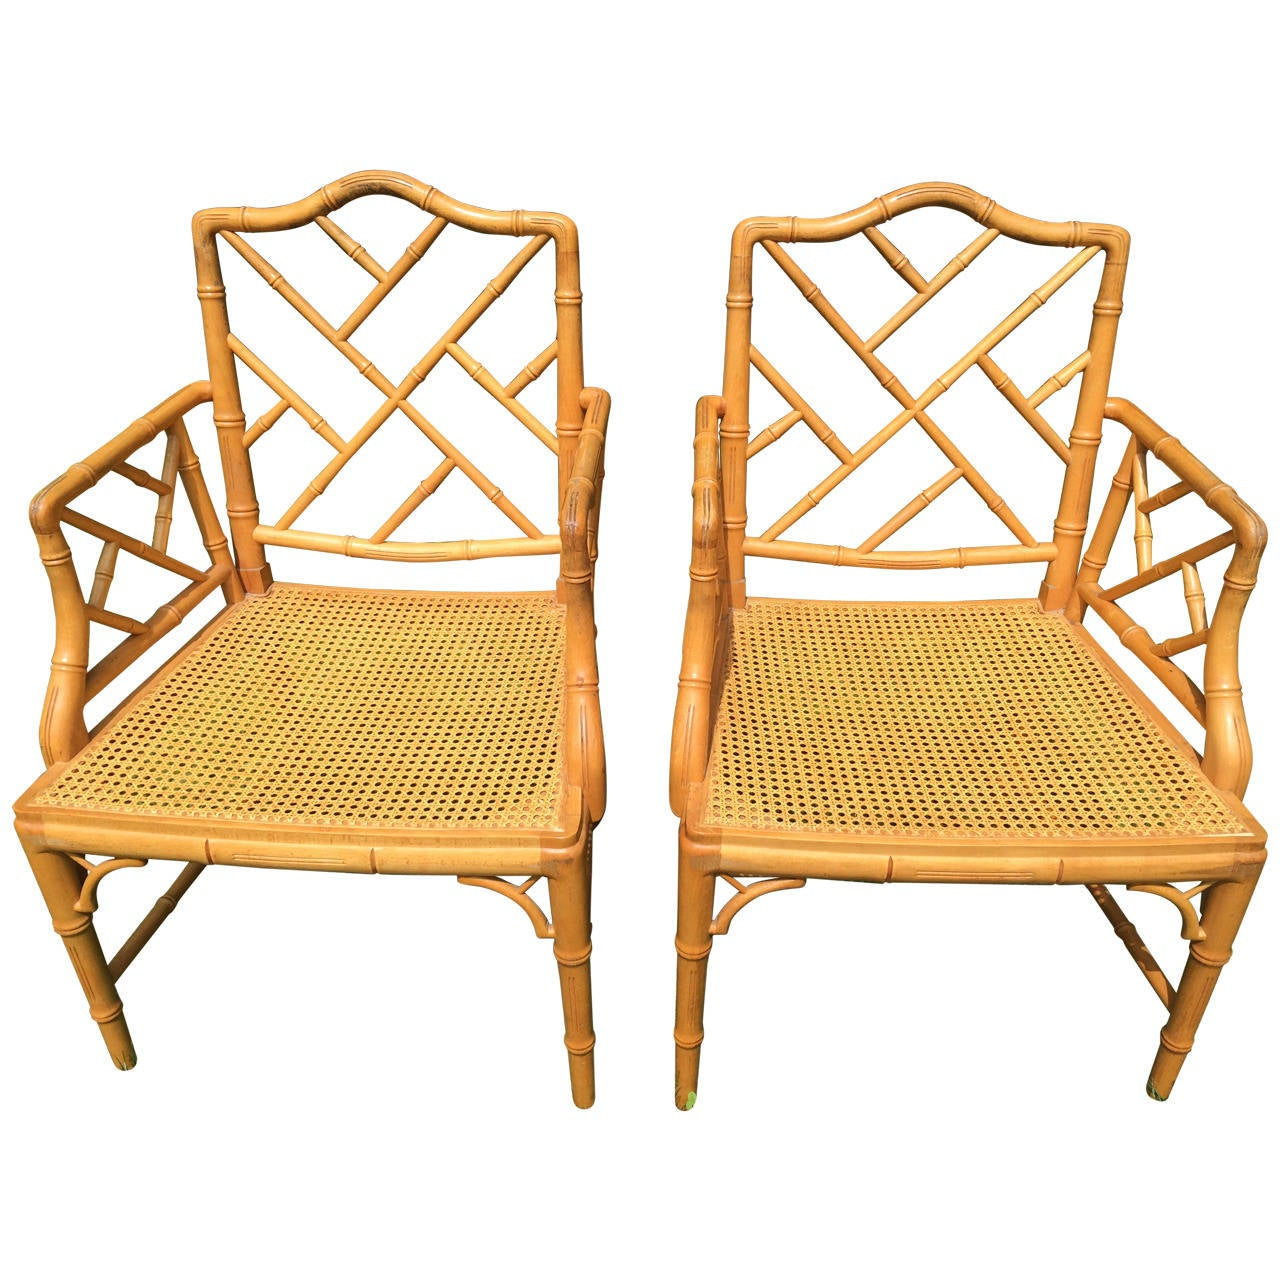 Pair of Chinese Chippendale Bamboo Chairs at 1stdibs